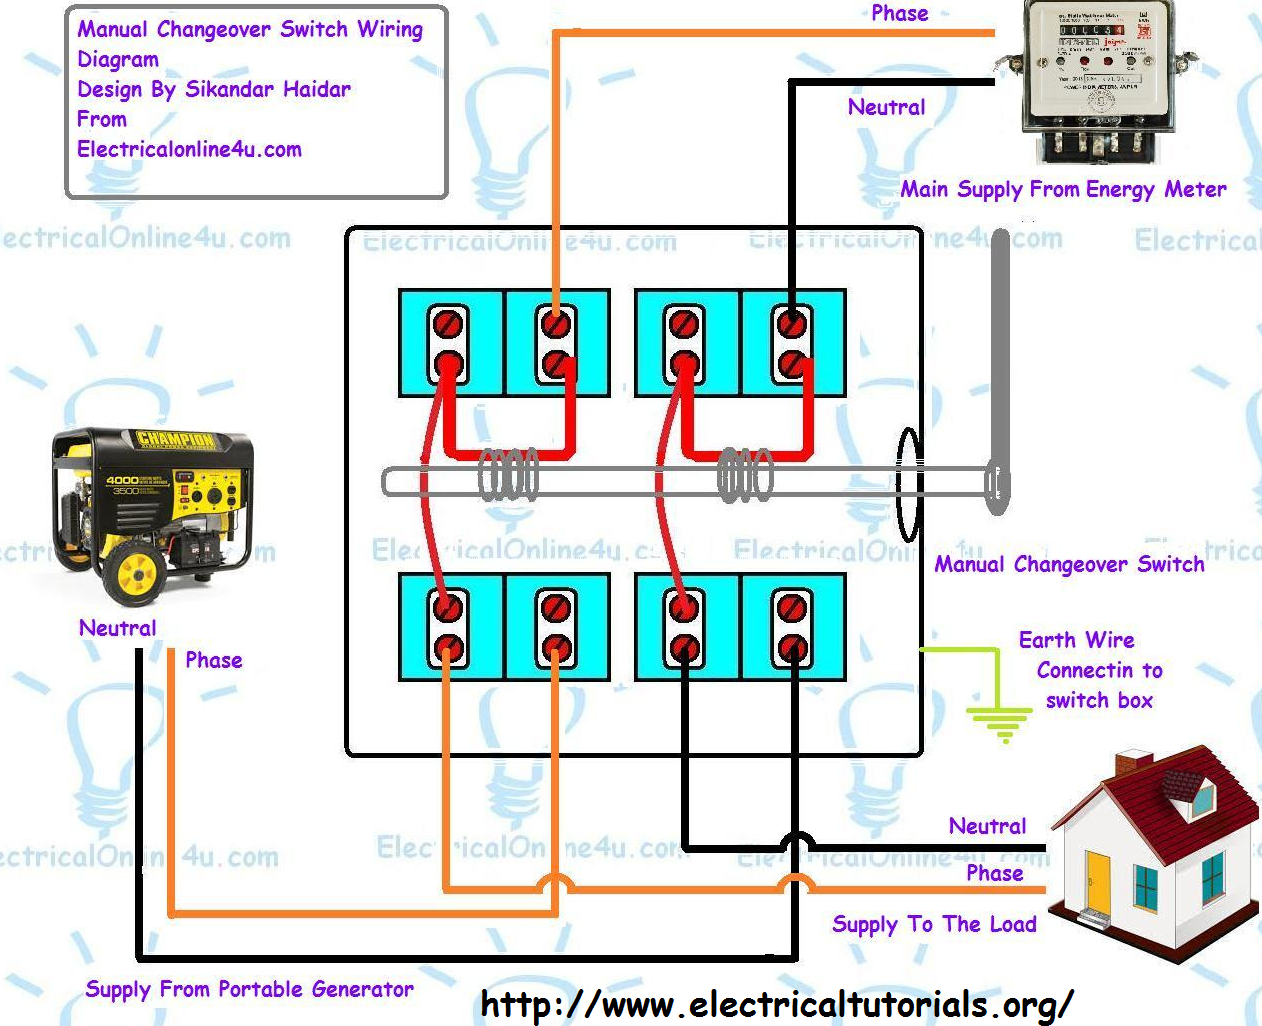 Wiring diagram of generator free download wiring diagram xwiaw free download wiring diagram portable generator changeover switch wiring diagram electrical of wiring diagram of cheapraybanclubmaster Image collections